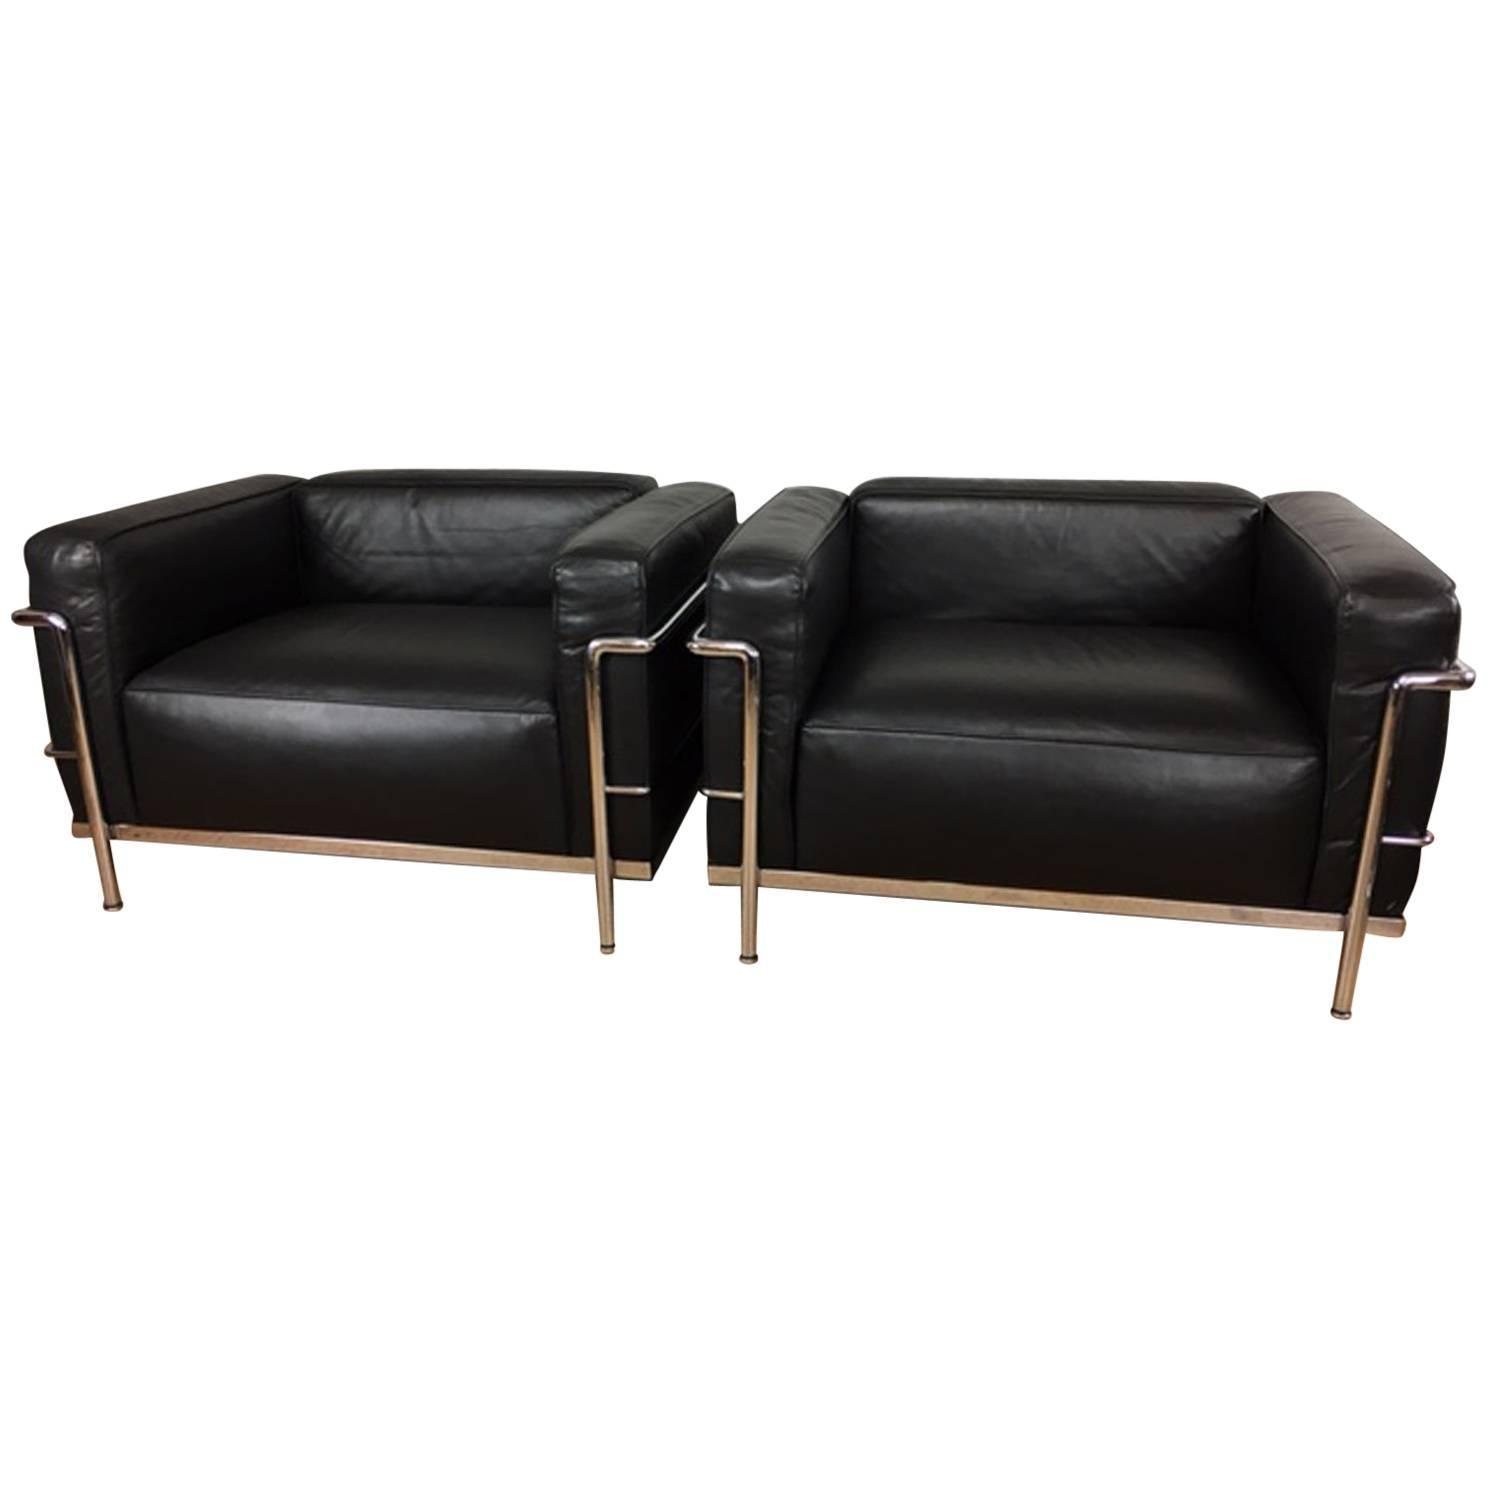 Le corbusier chair vintage - Le Corbusier Lc3 Grand Comfort Lounge Chairs By Cassina